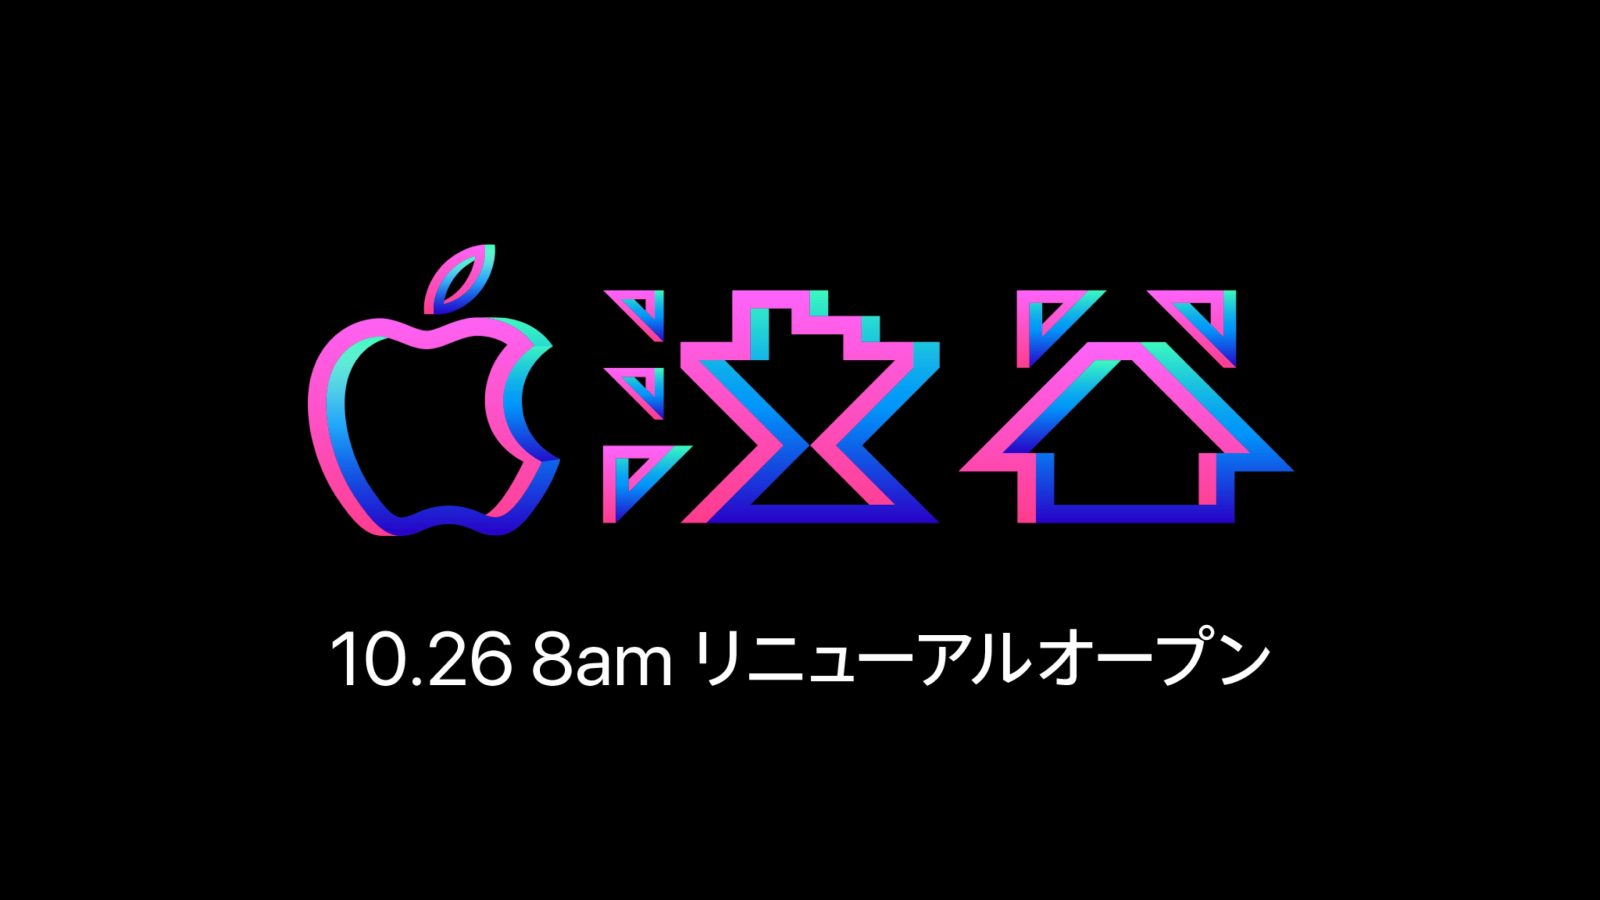 Apple Shibuya Reopening October 26th After 11-month Renovation